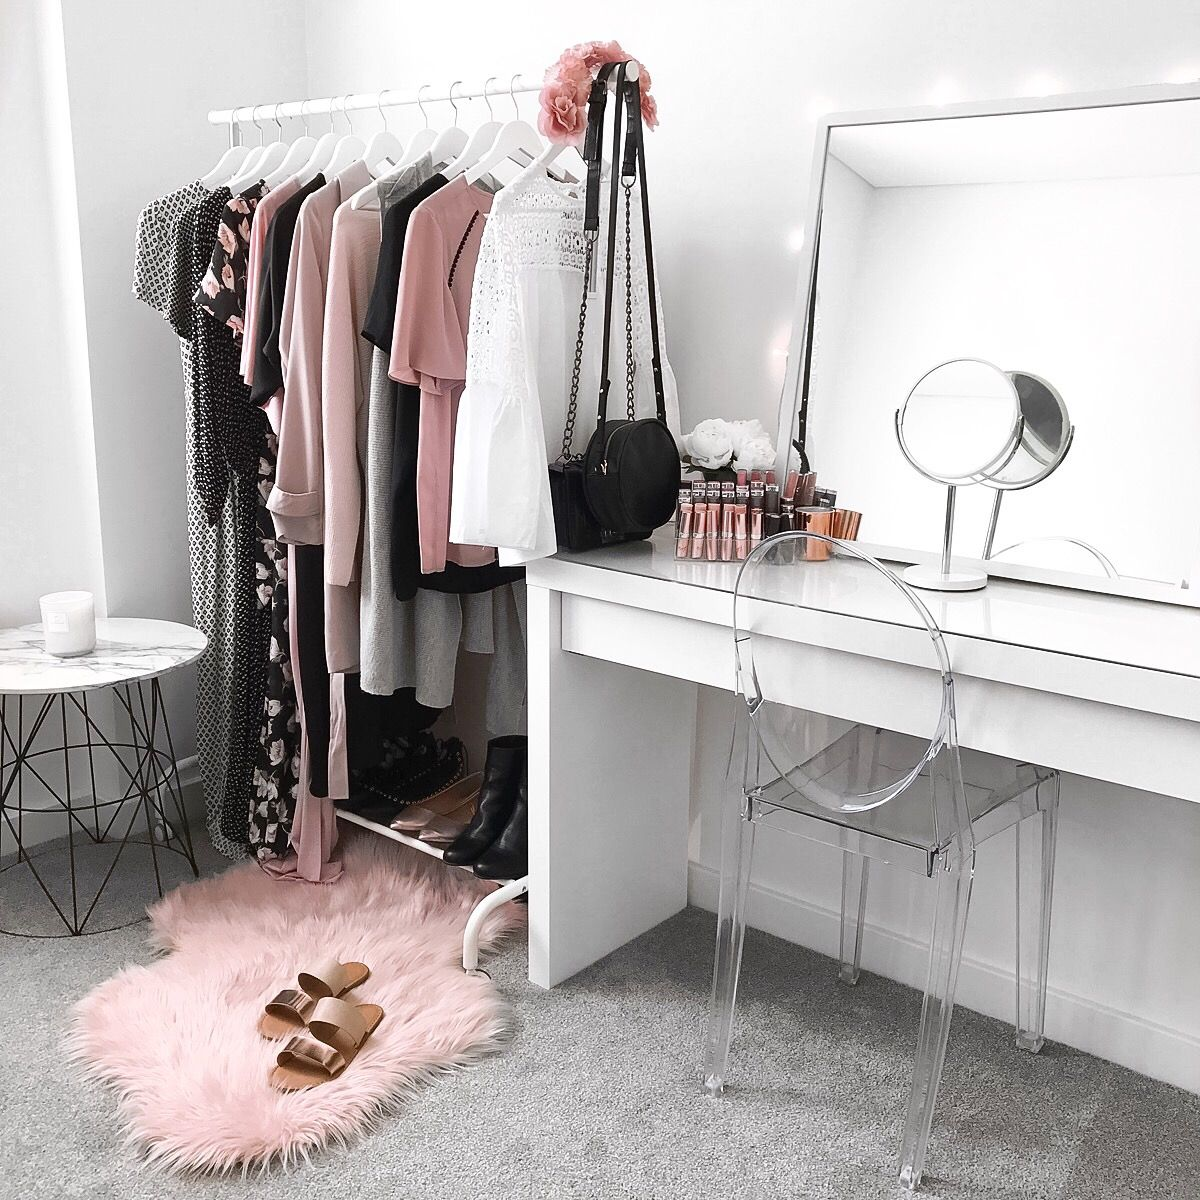 My dressing room makeup vanity wardrobe for Dressing room ideas ikea